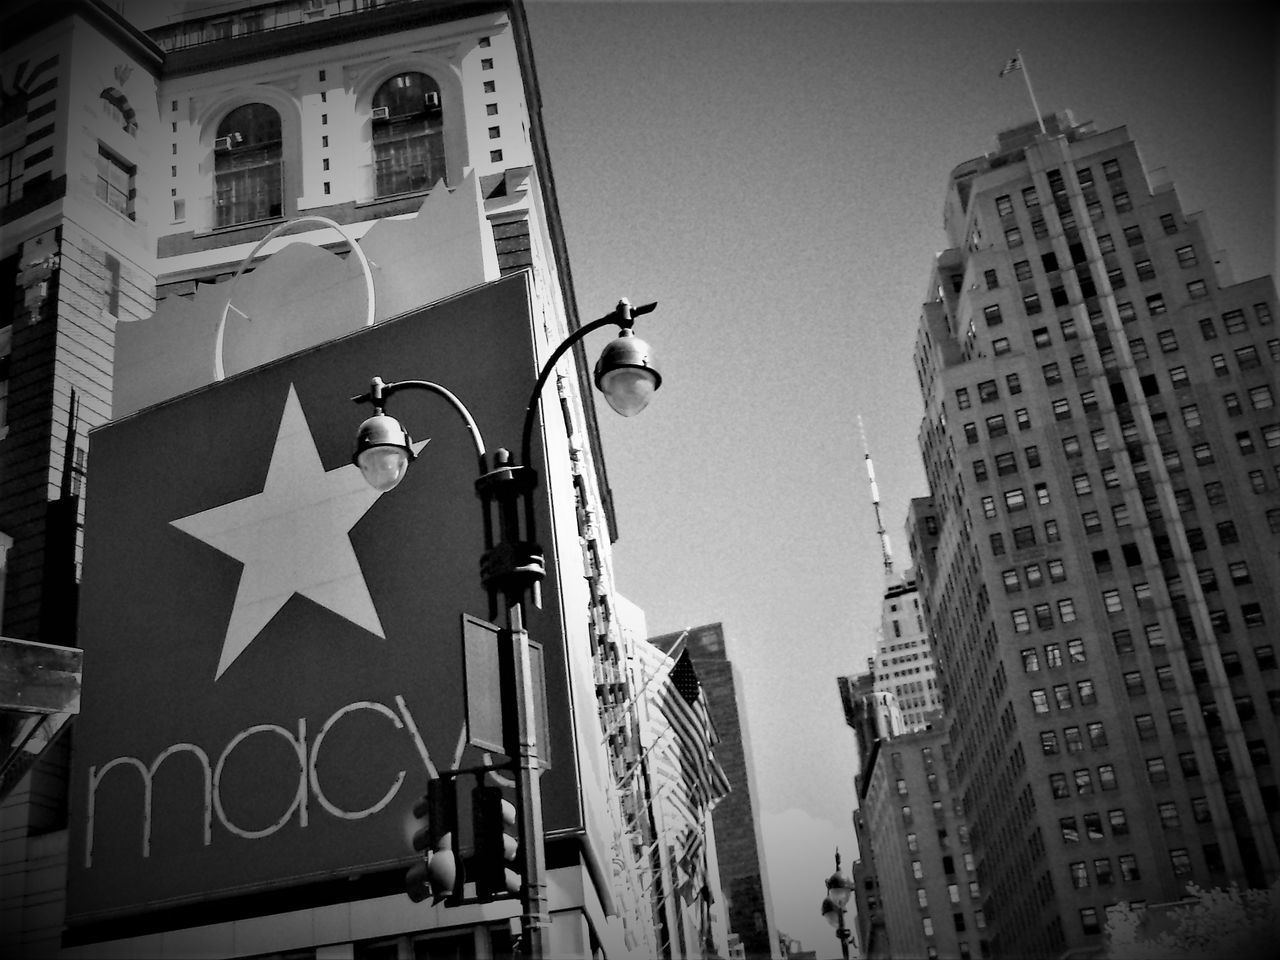 A Black and White photo shot of Macys New York. Architecture BIG Big Signs Black And White Building Exterior Built Structure City Clear Sky Communication Day Guidance Logo Low Angle View New York New York City New York City USA No People NYC NYC Street Outdoors Road Sign Signs Sky Skycrapers Skyscrapers